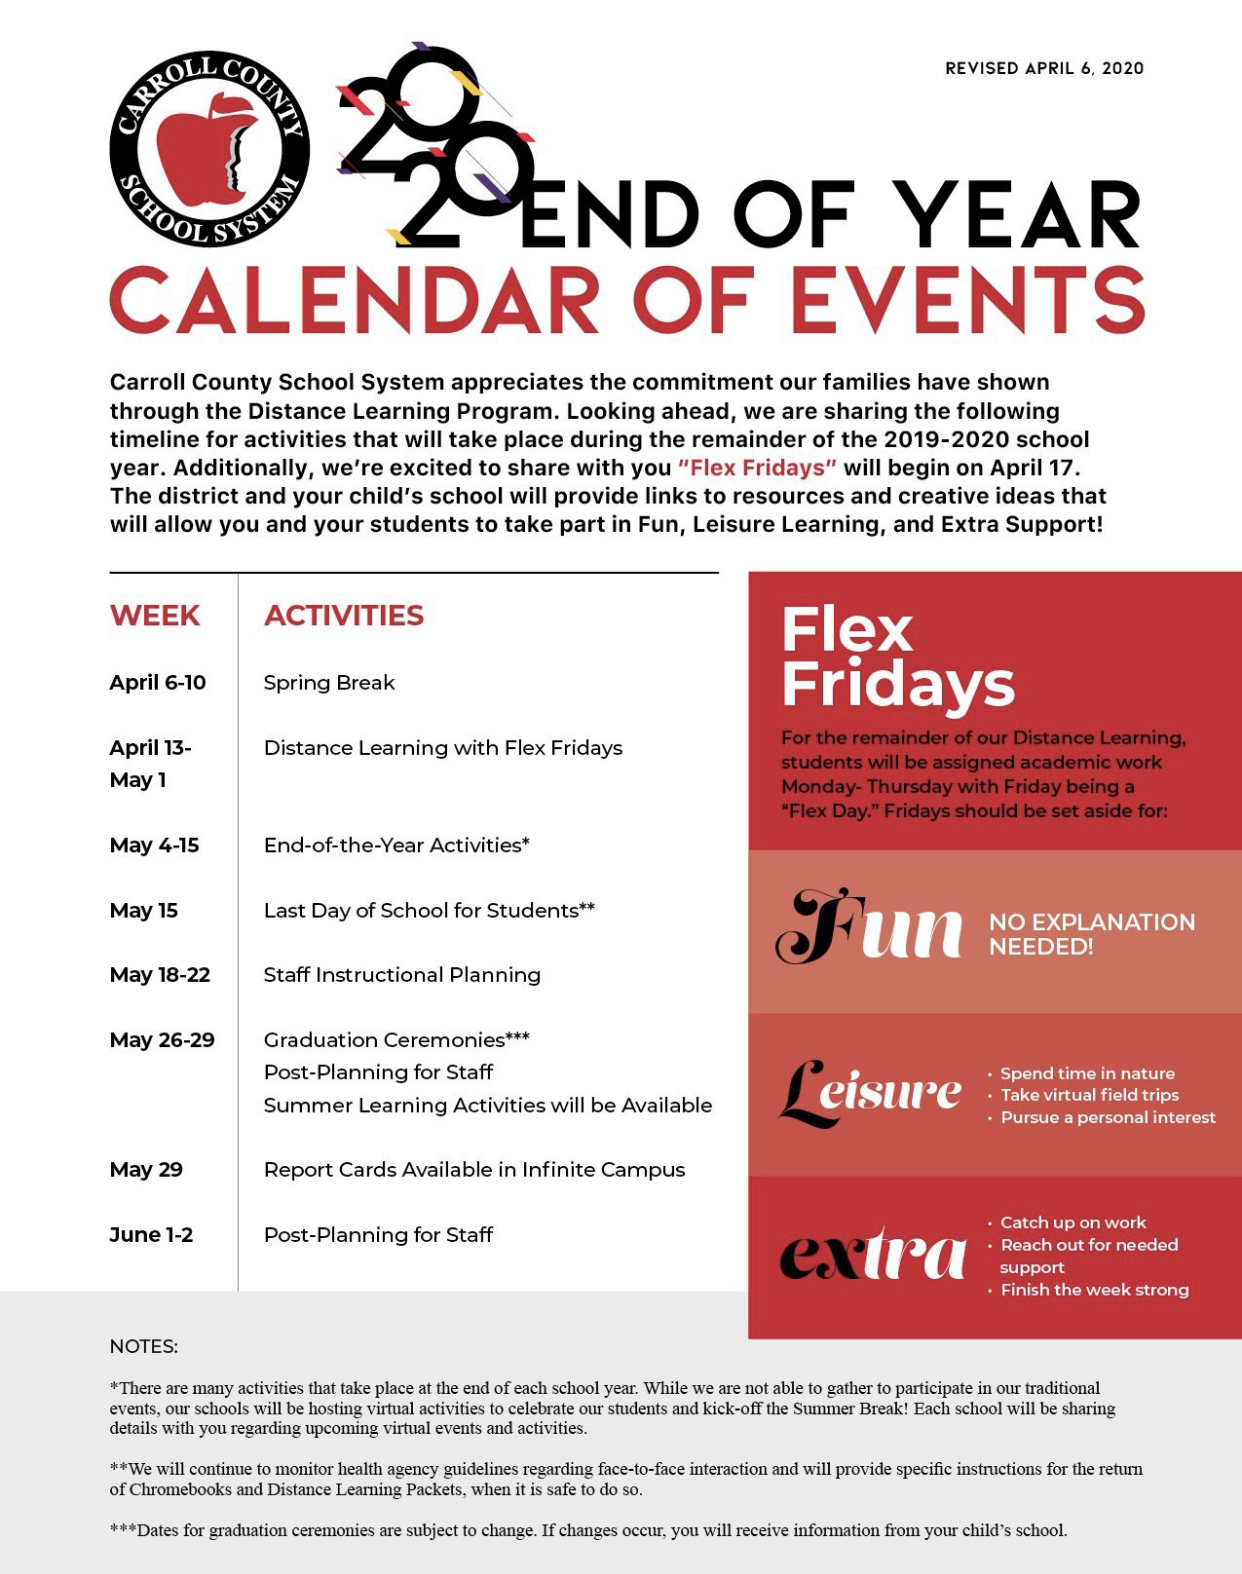 2020 End of Year Calendar of Events